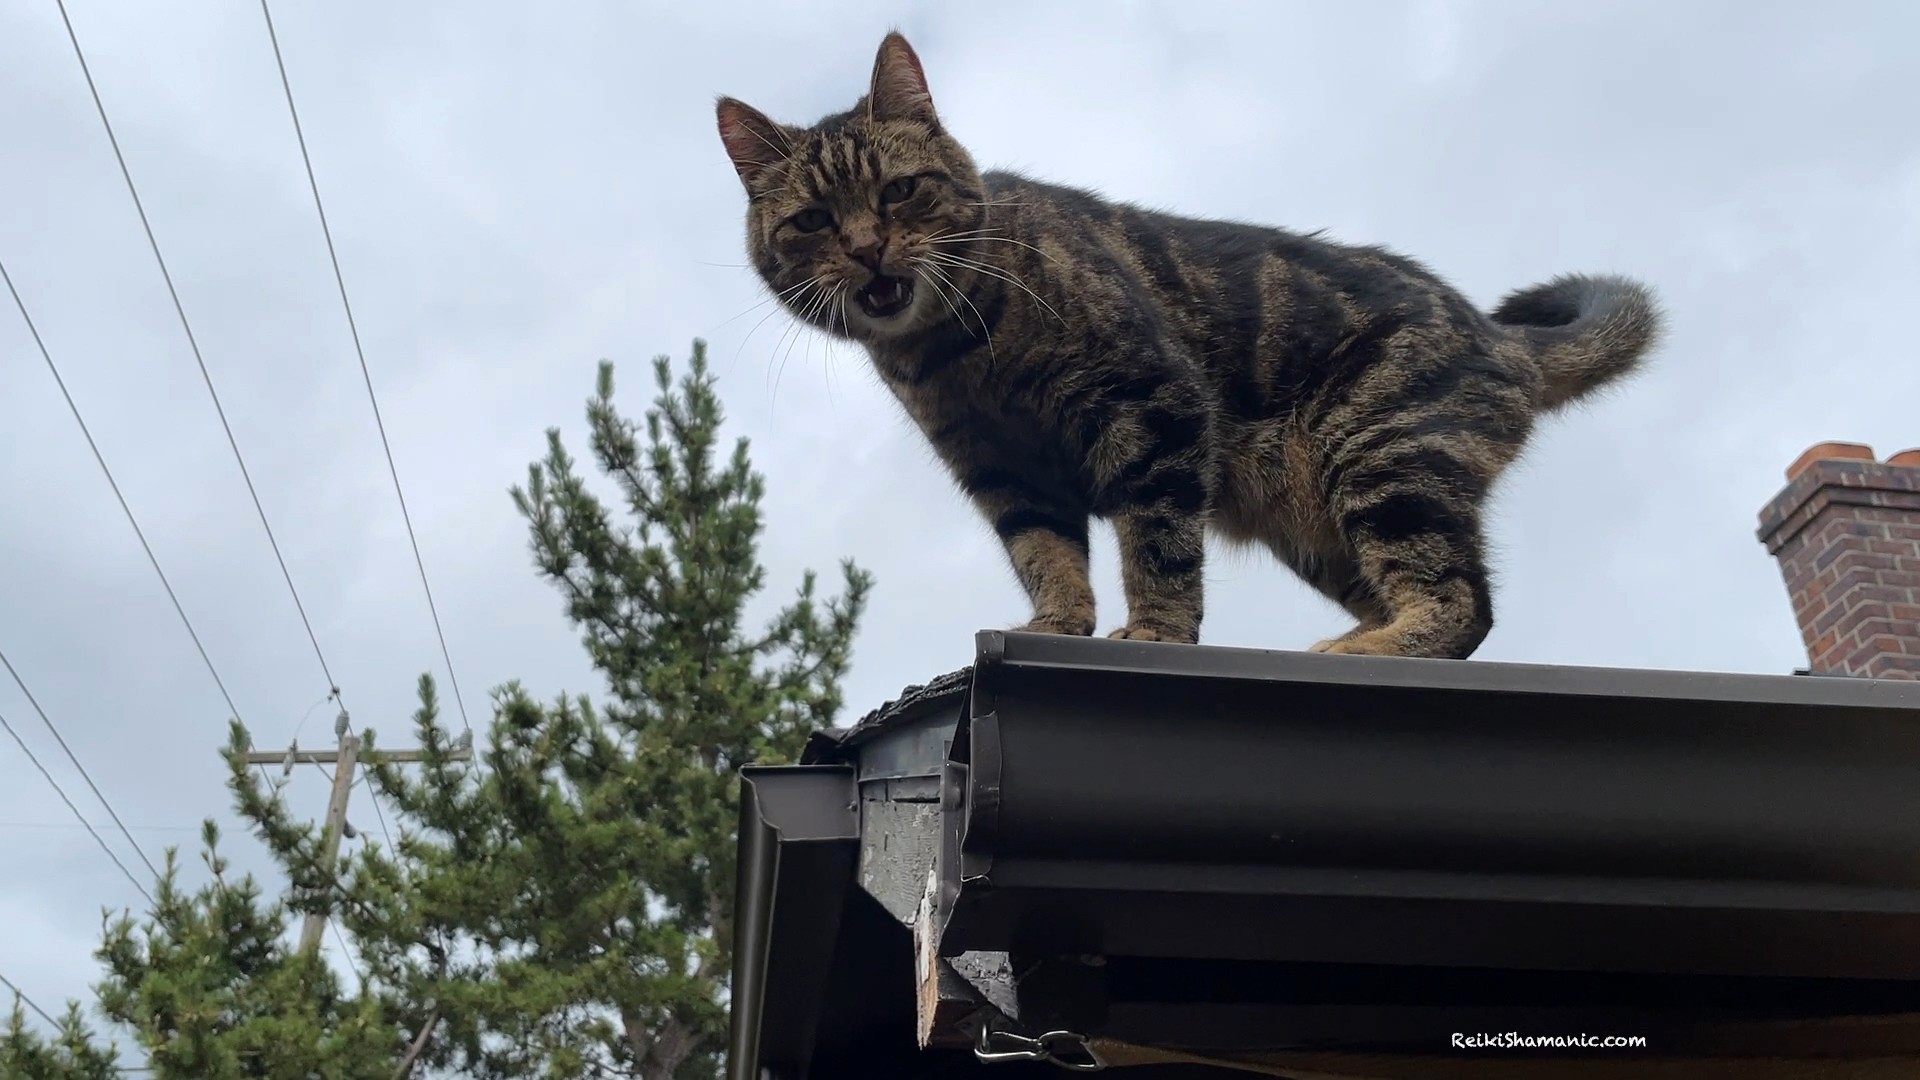 Cat Manitou And The Roof Dismount